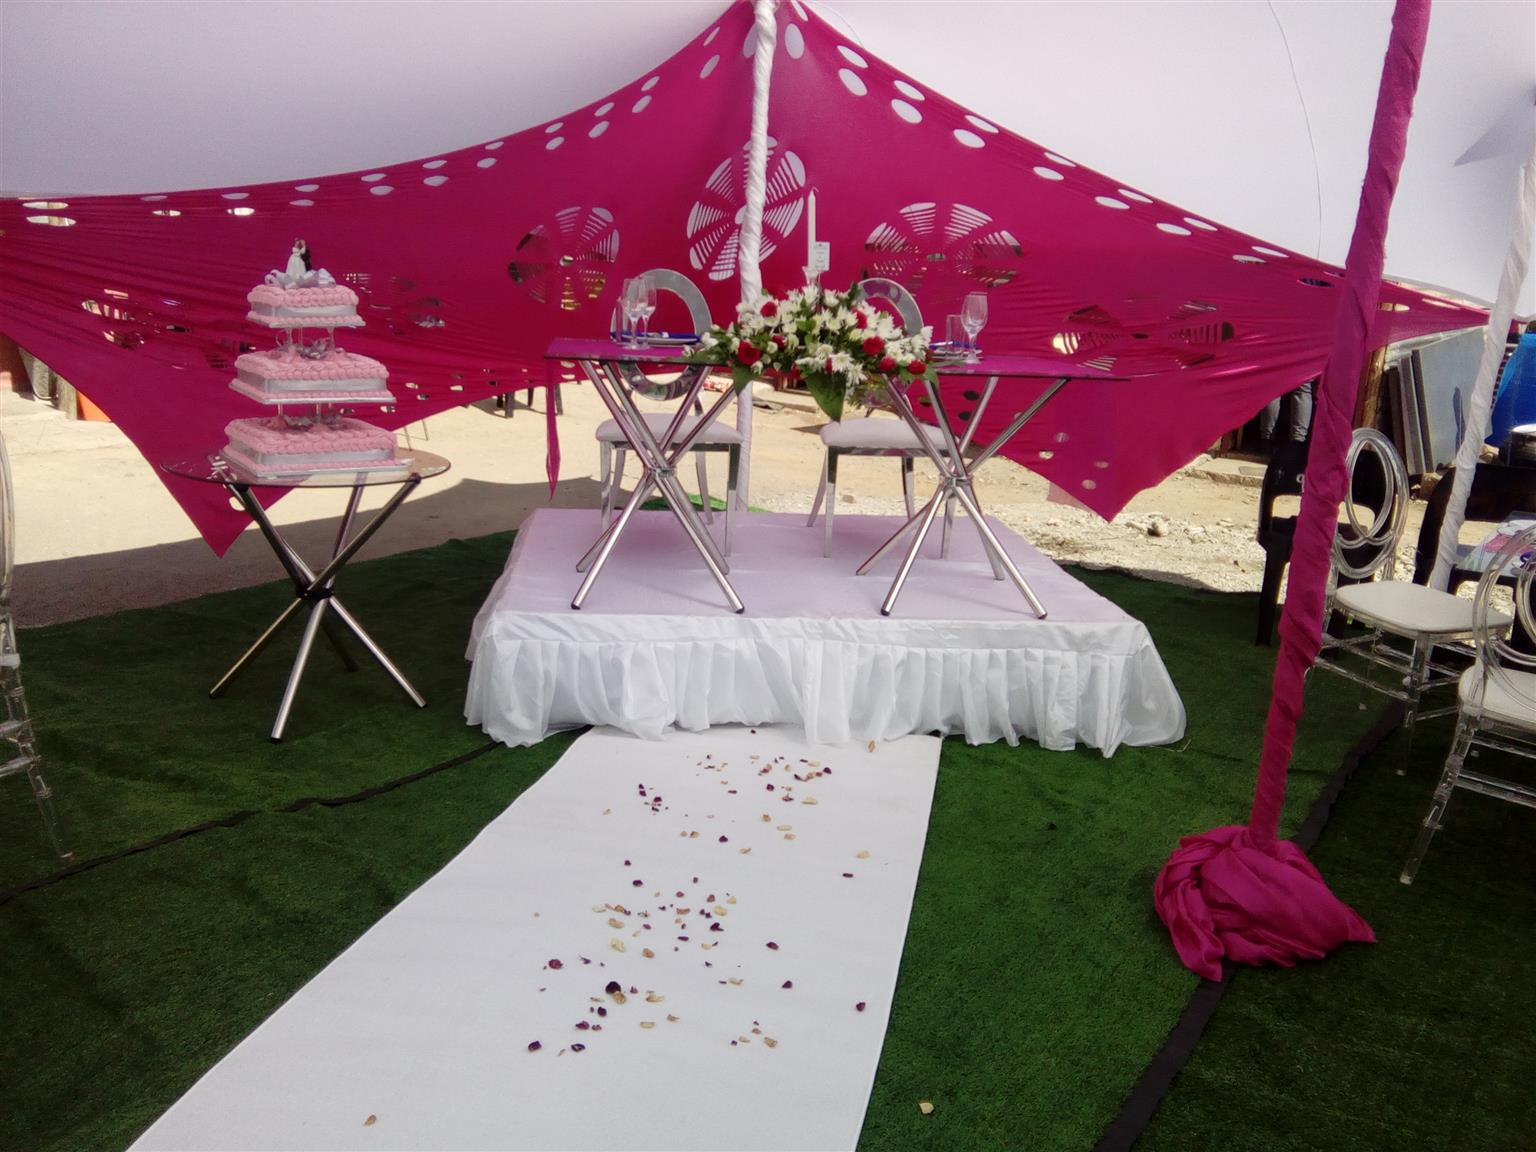 Wedding Decor And Catering Services Junk Mail